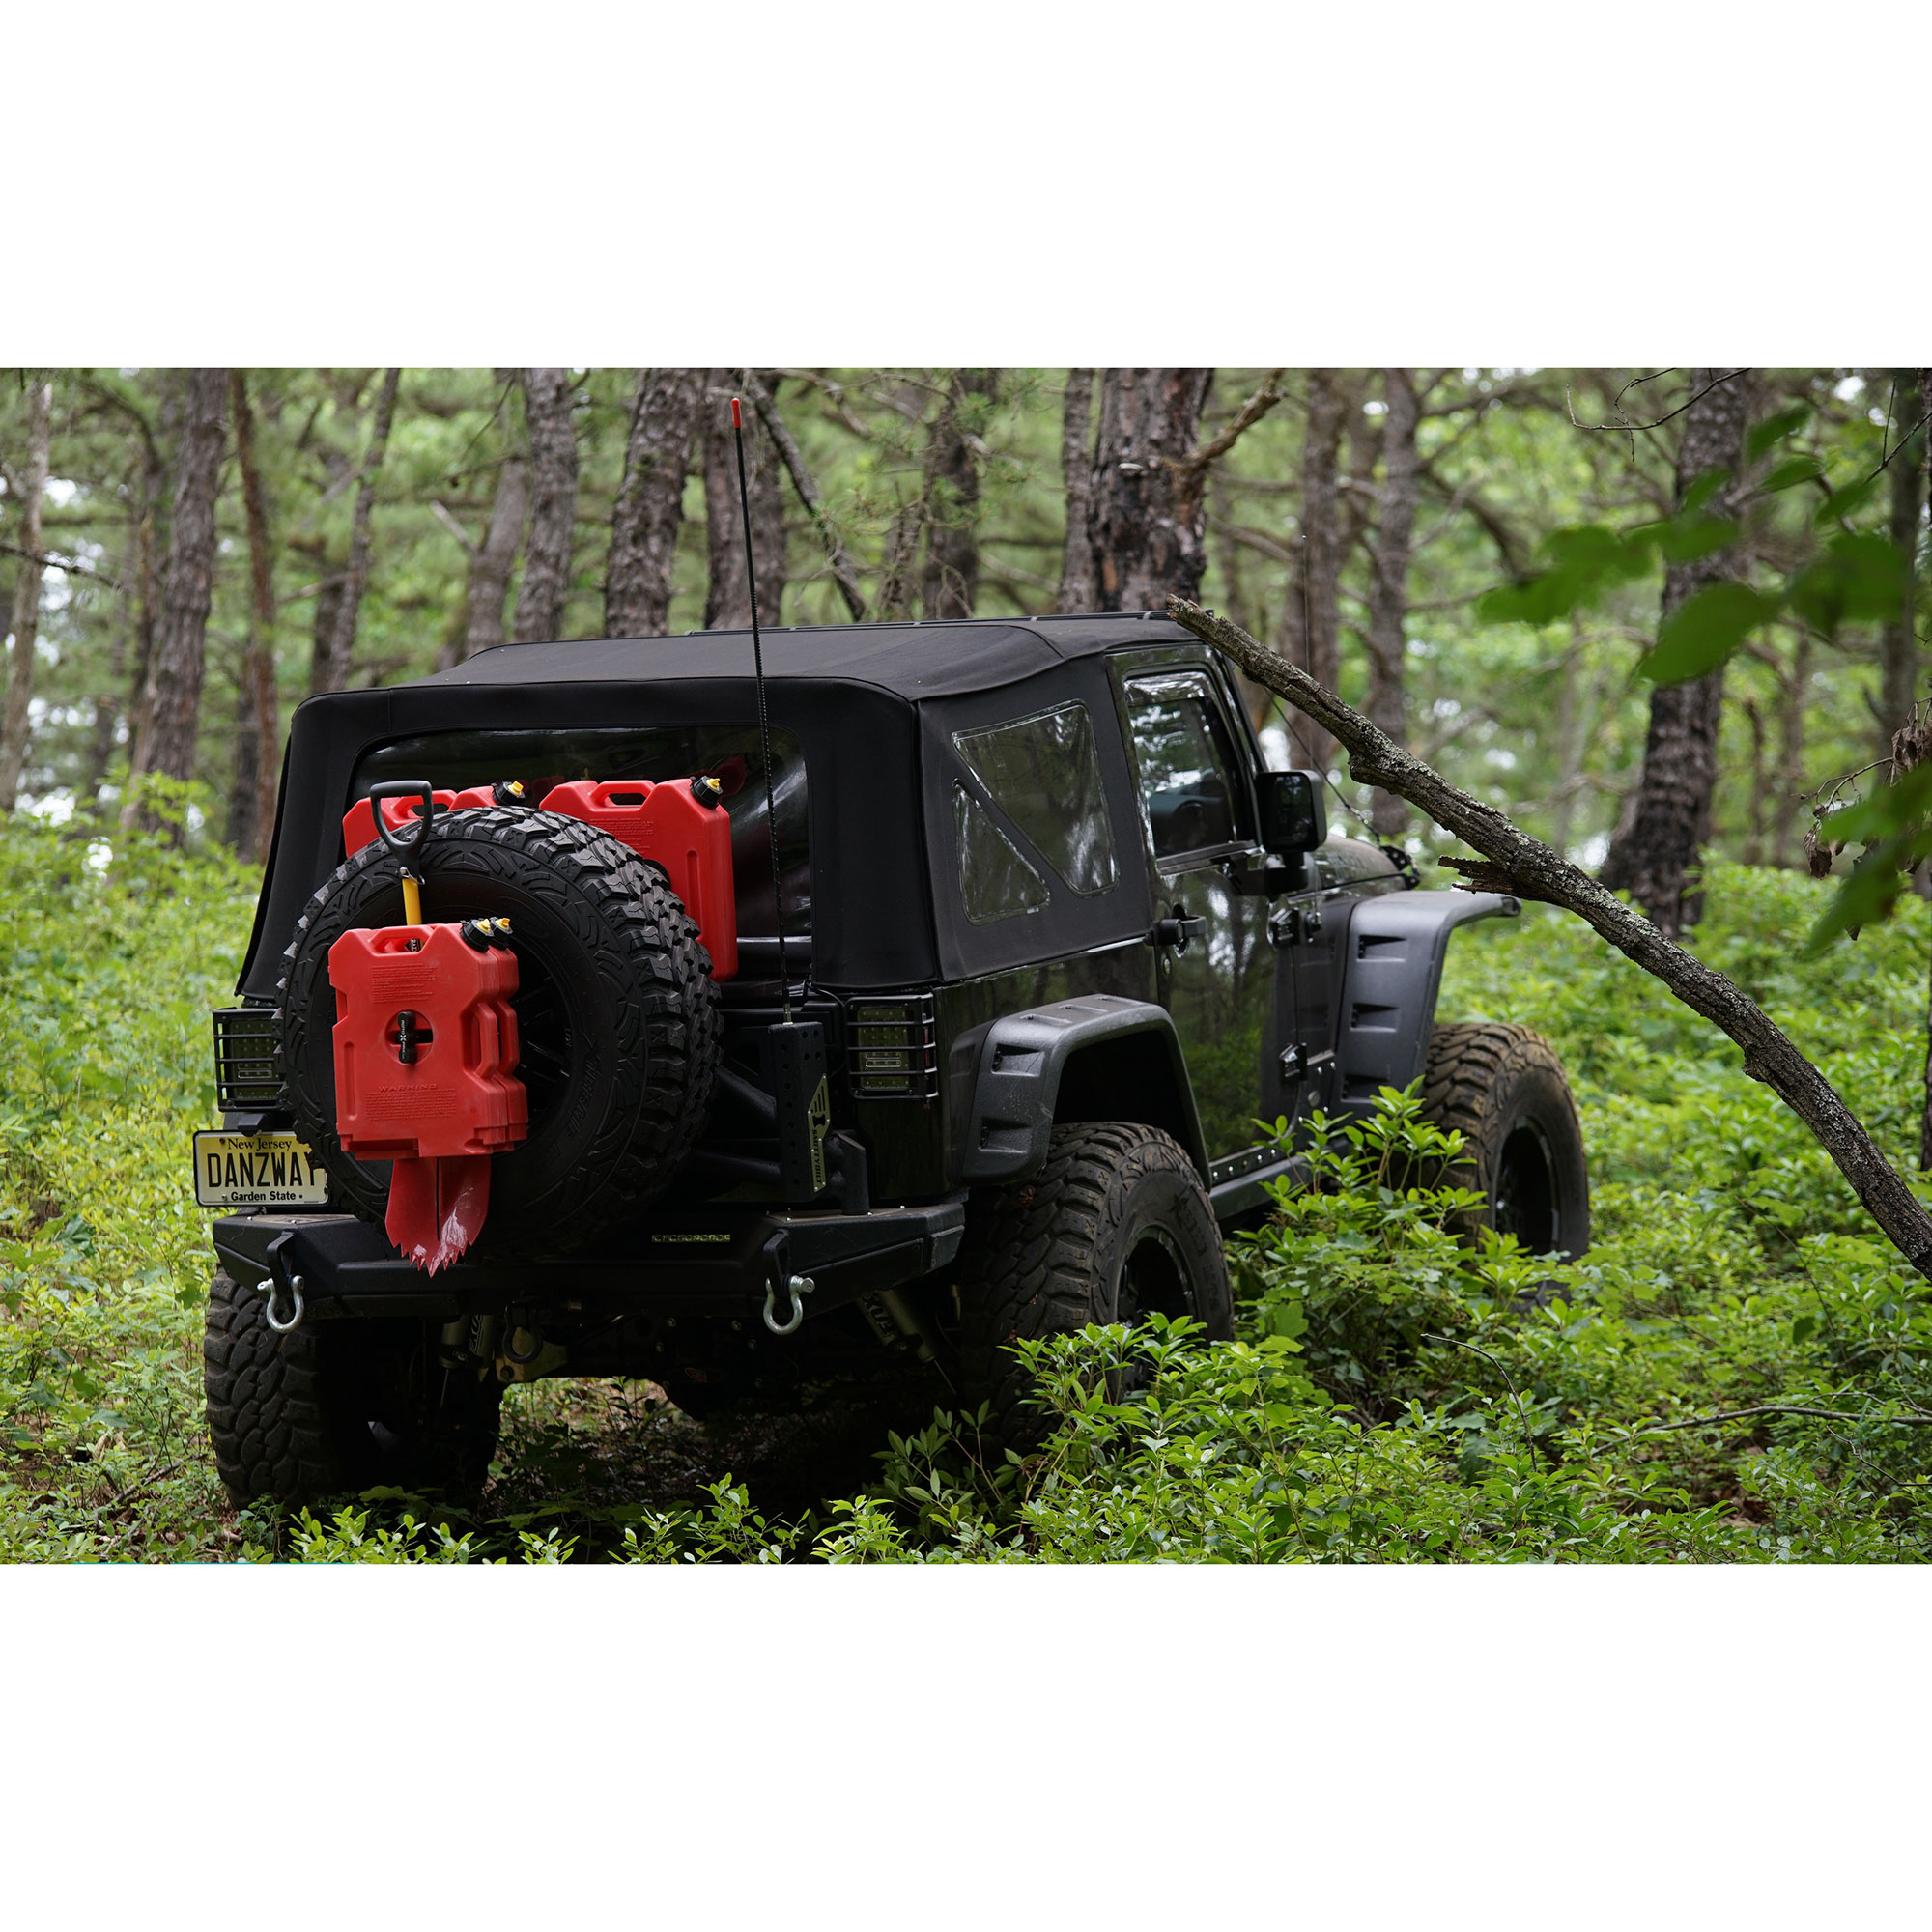 2 Gallon Rotopax Fuel Can Durable Gas Gasoline Container Red Off Road Moto Jeep